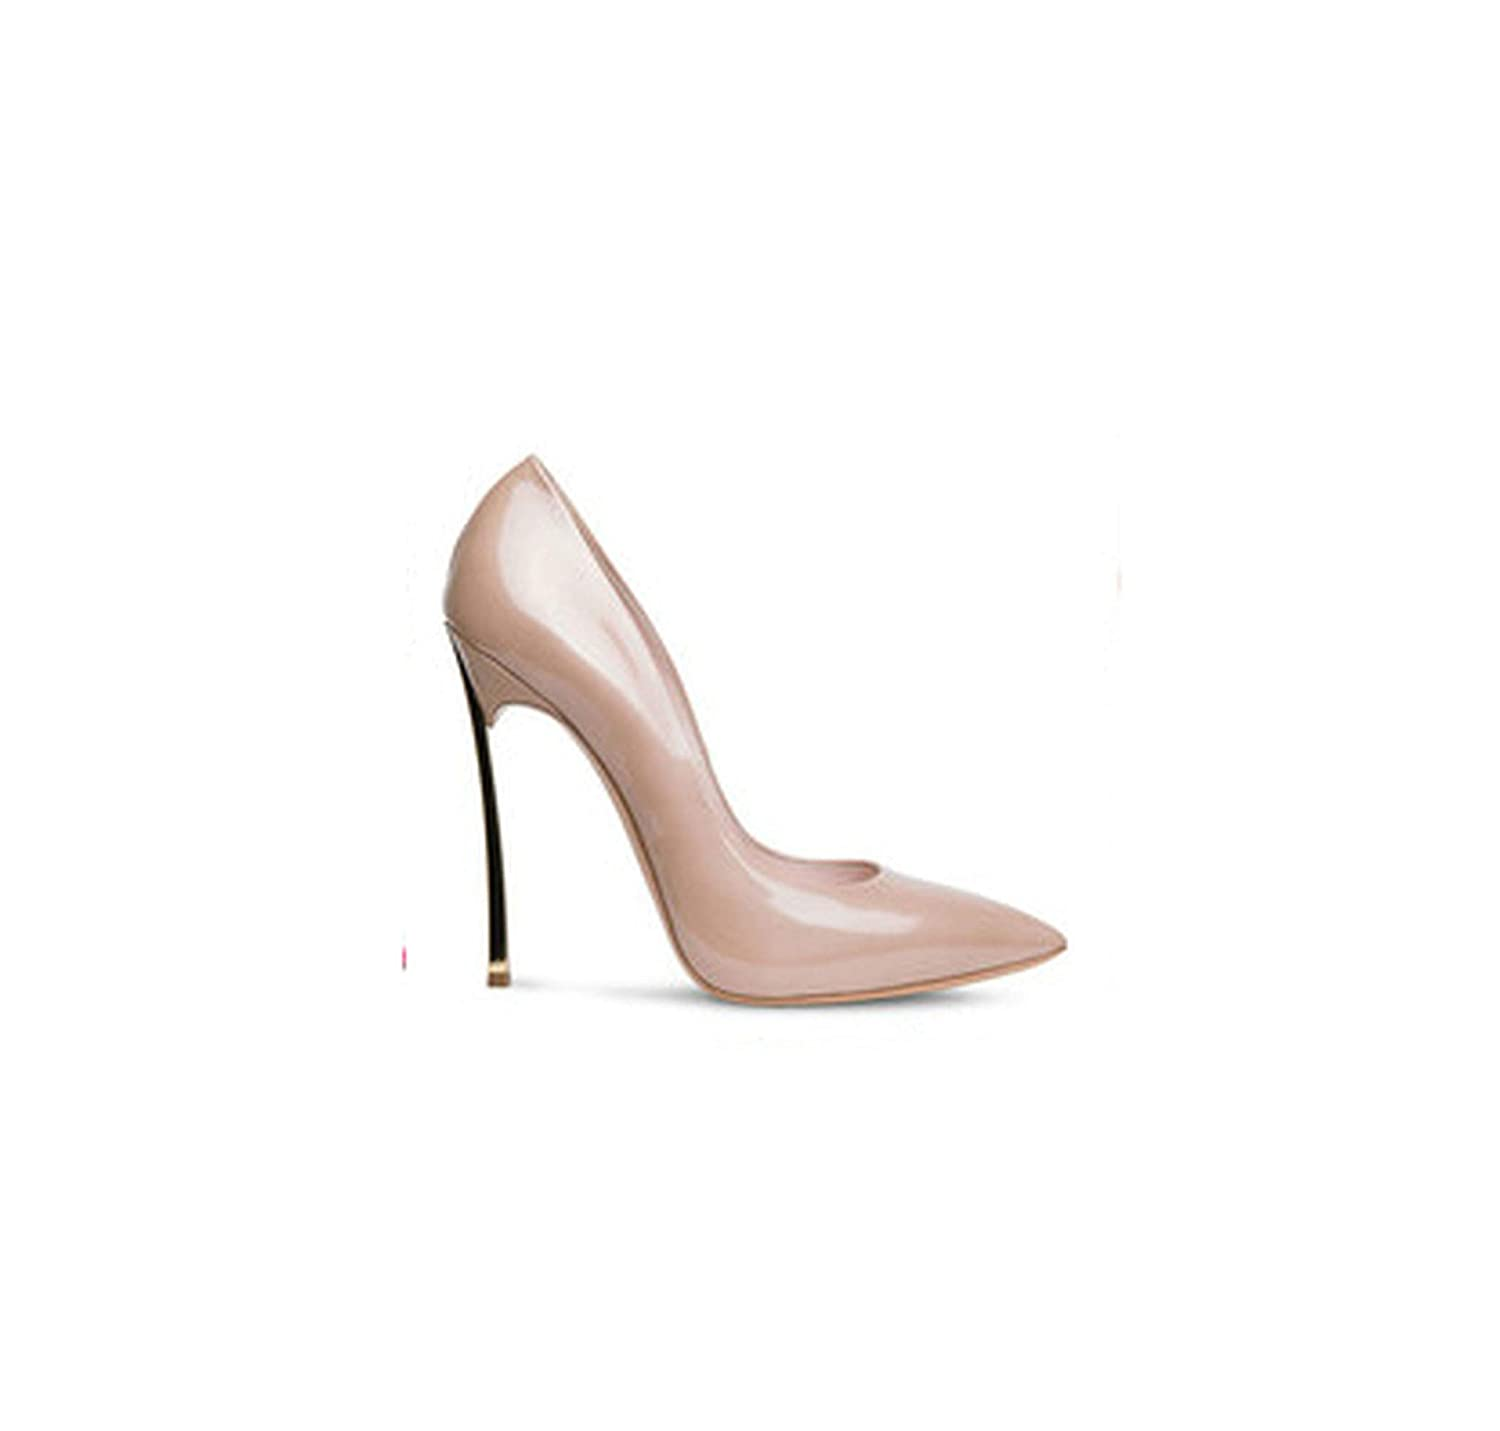 Patent nude RAINIE002 Brand shoes Woman High Heels Women Pumps Stiletto Thin Heel Women's shoes Nude Pointed Toe High Heels Wedding shoes Size 33-43